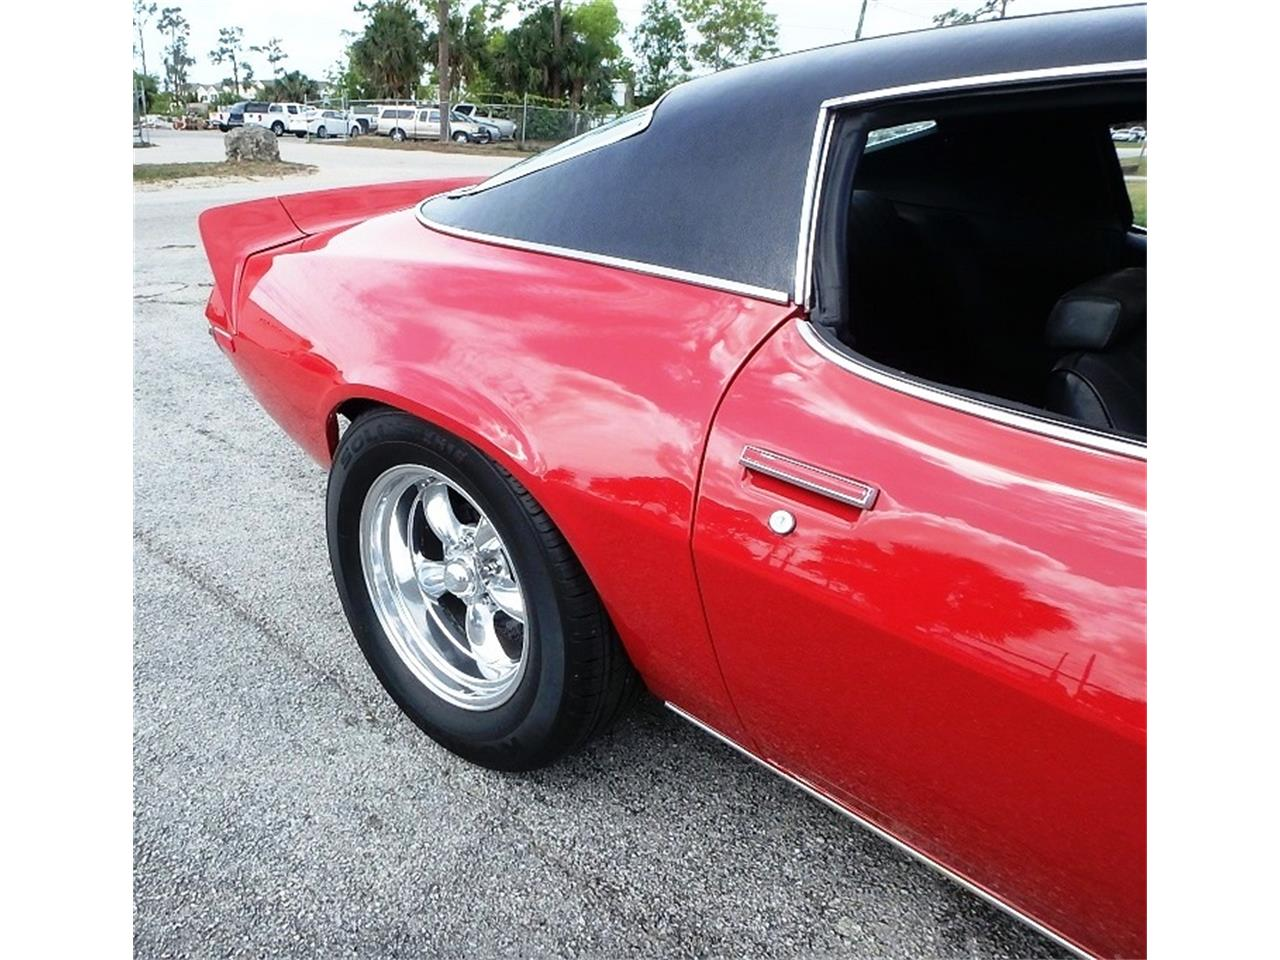 Large Picture of Classic 1970 Chevrolet Camaro located in POMPANO BEACH Florida - $24,995.00 Offered by Cool Cars - NAPL